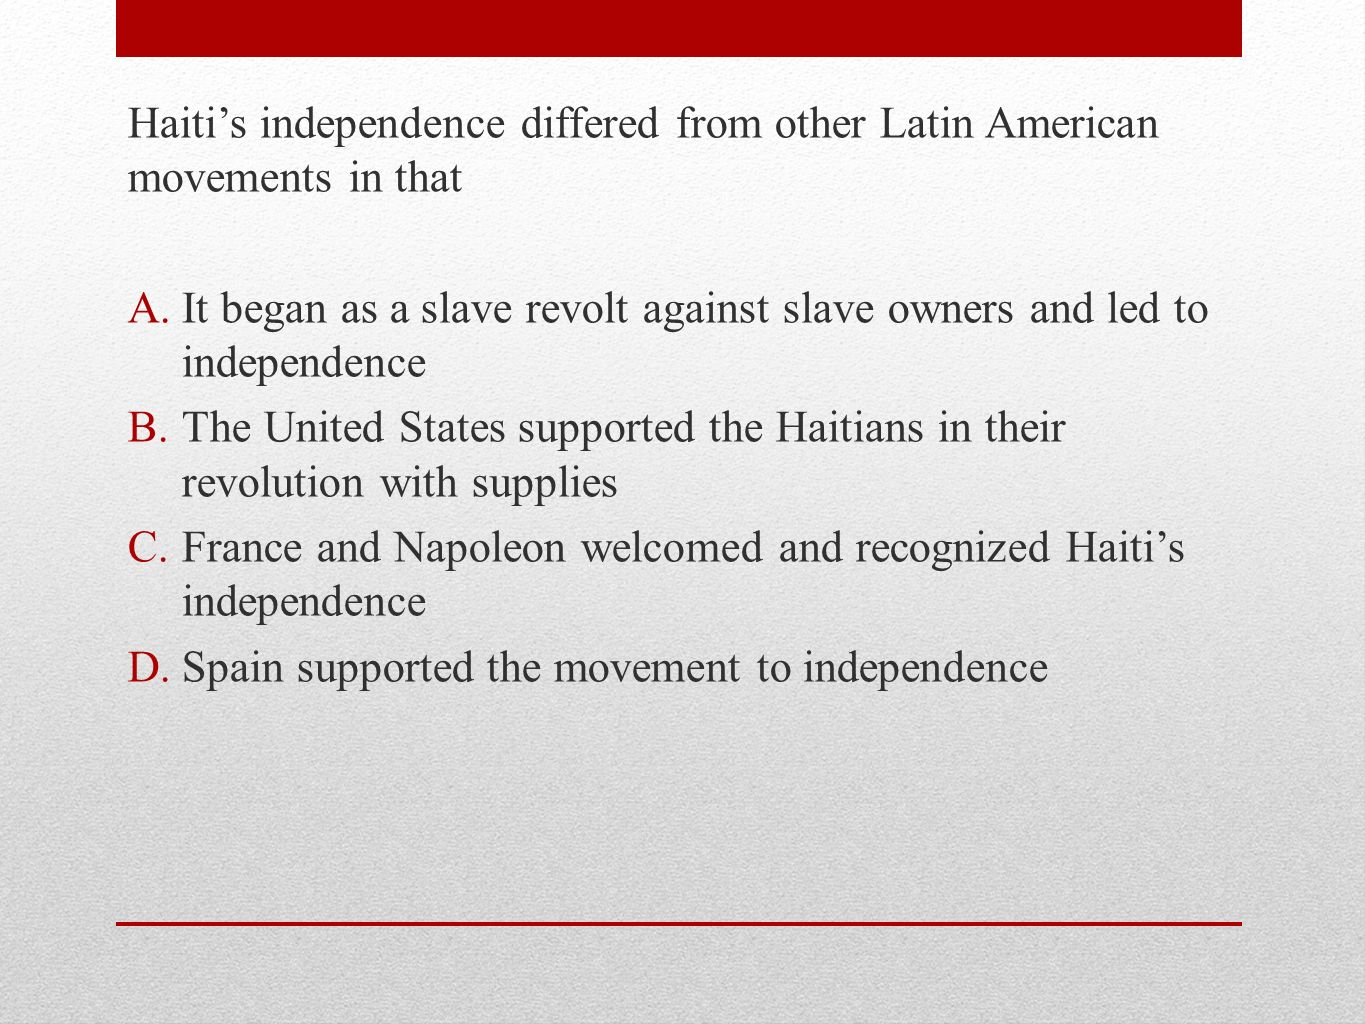 Haiti's independence differed from other Latin American movements in that